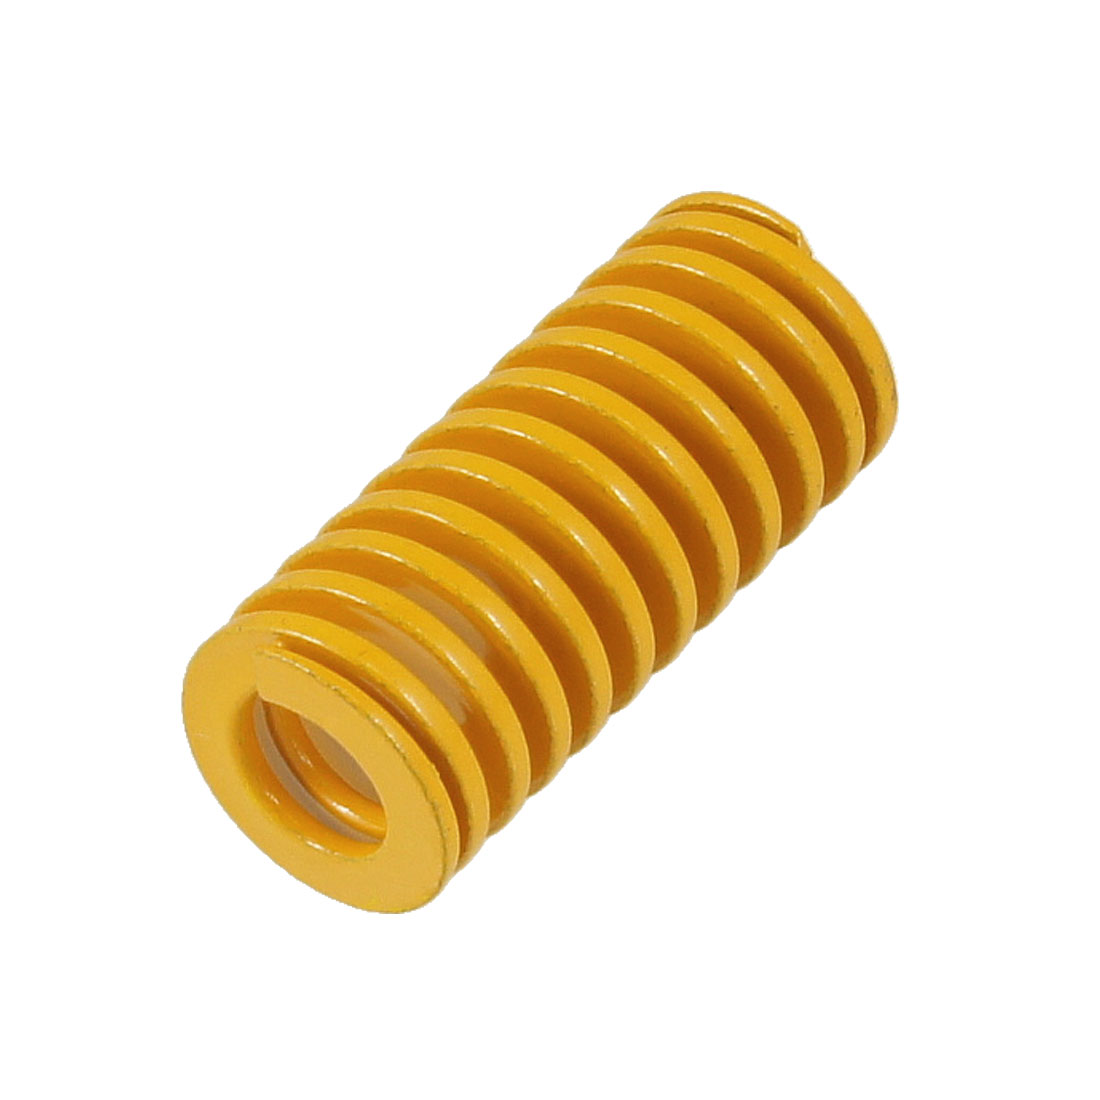 18mm x 10mm x 40mm Spiral Metal Stamping Compression Die Spring